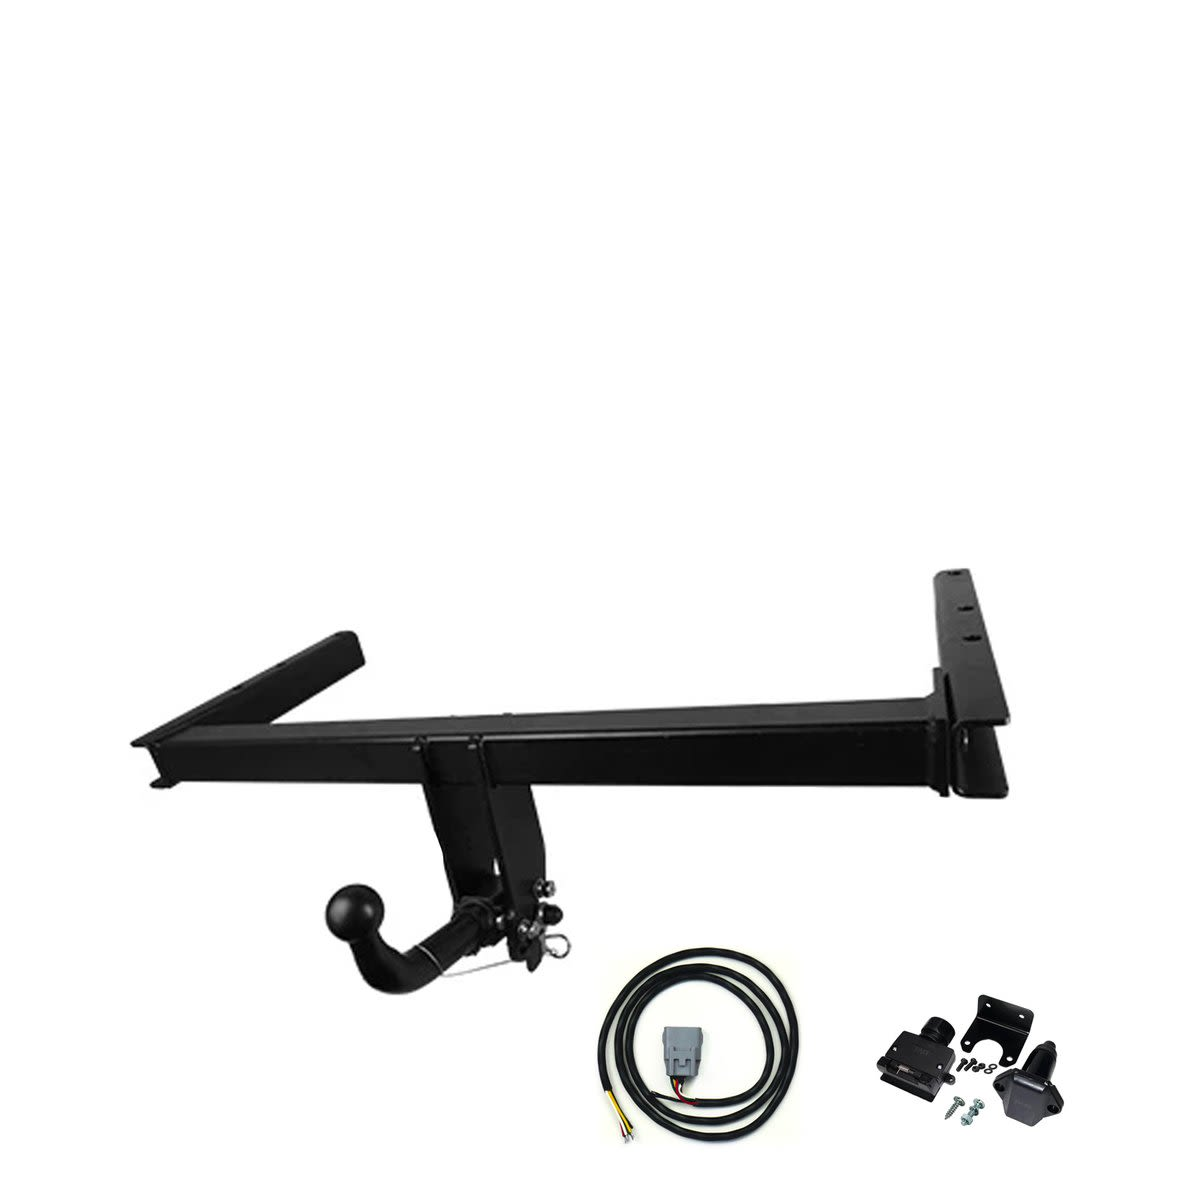 TAG Towbars European Style Tongue to suit BMW 7 (03/1987 - 10/1994)